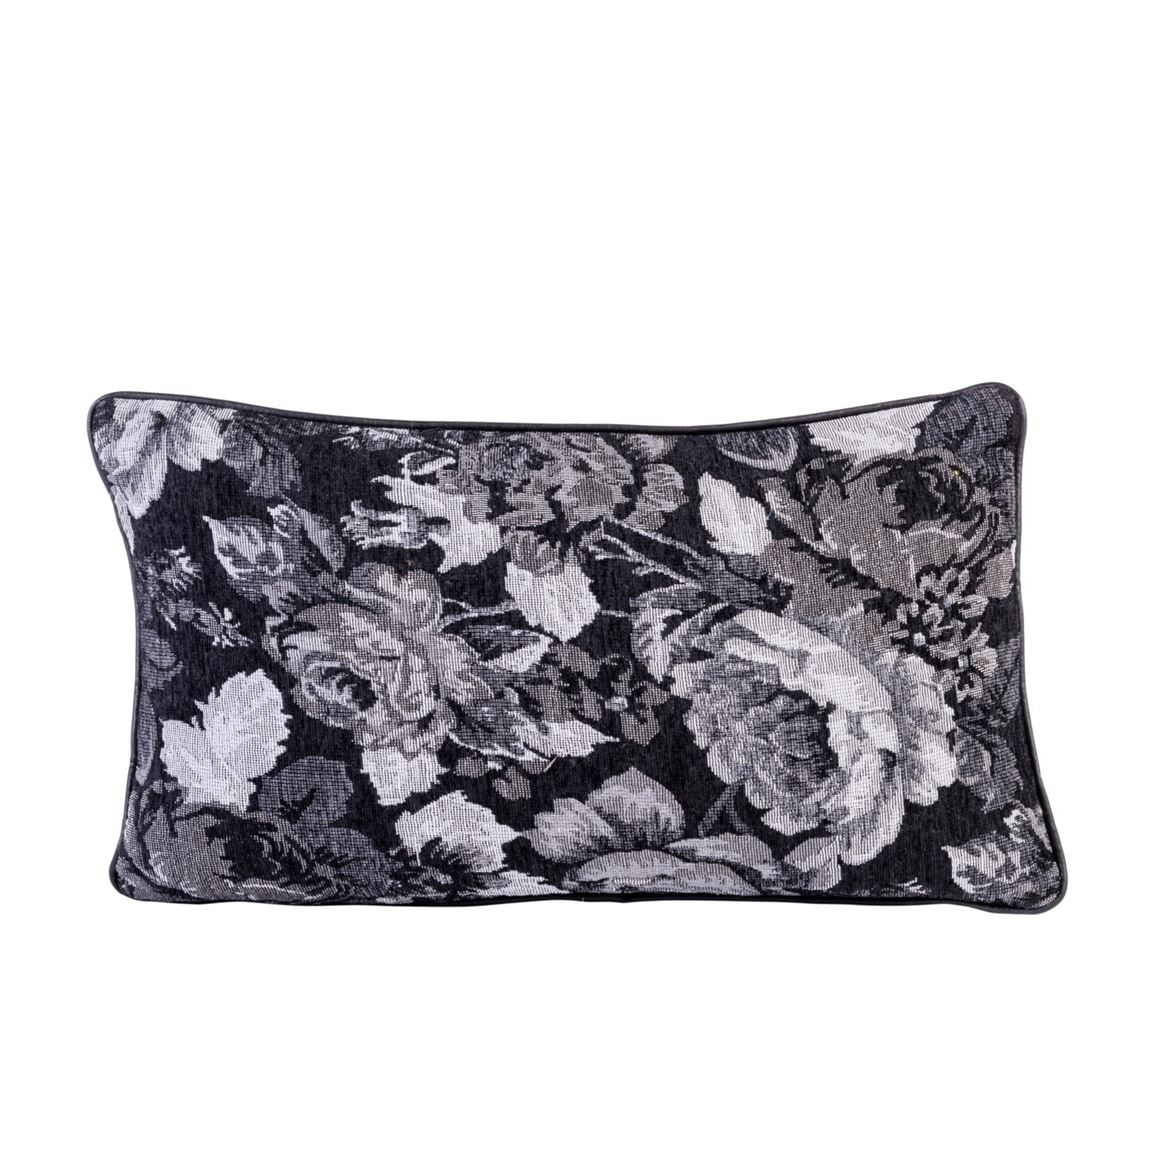 BLACK ROSE Coussin multicolore Larg. 30 x Long. 50 cm_black-rose-coussin-multicolore-larg--30-x-long--50-cm